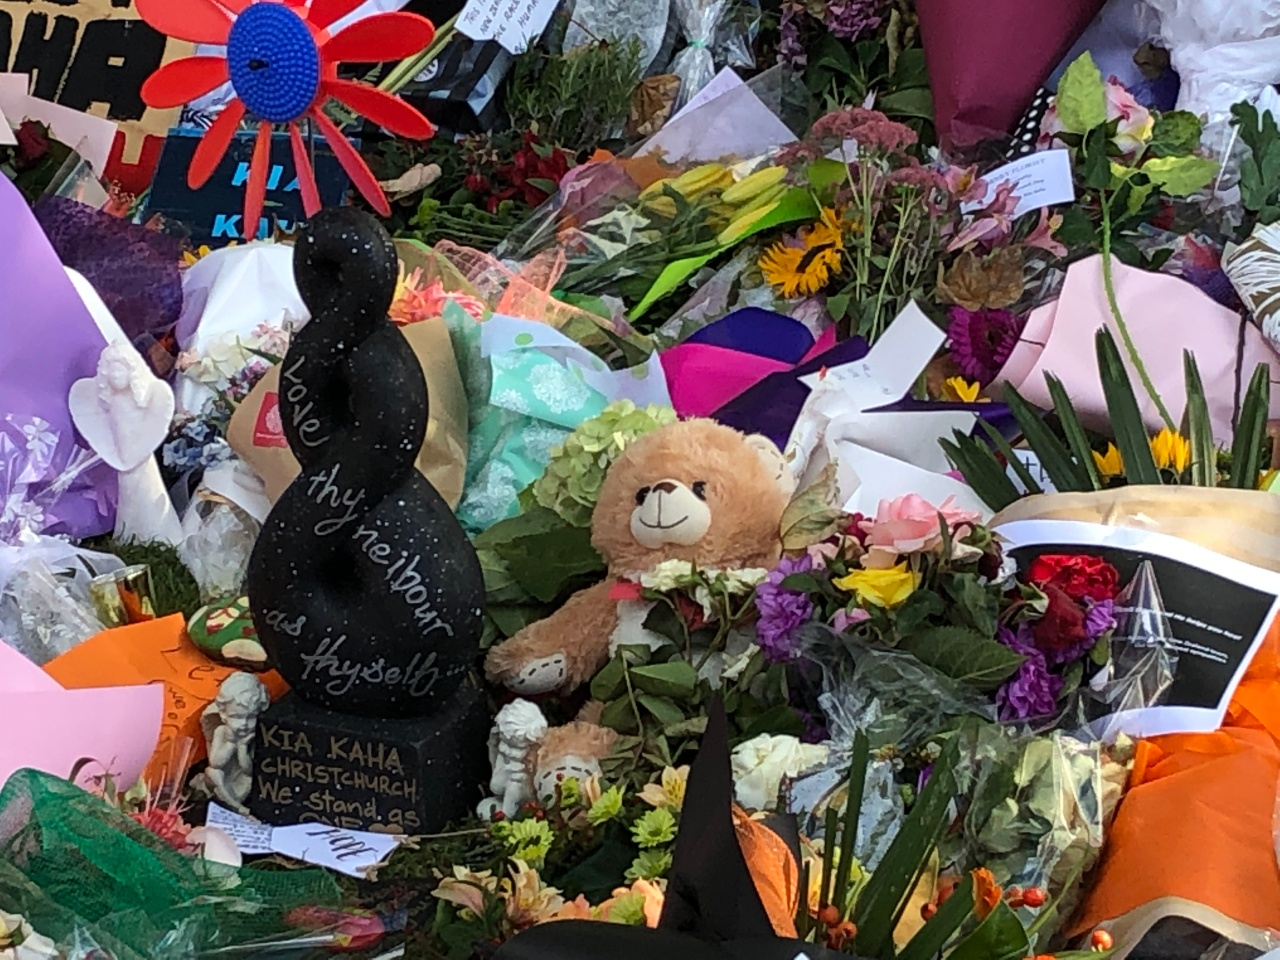 """Many floral tributes for the victims of the Christchurch terrorist attacks, with small statues of angels and a teddy bear. A Maori carving sits in the middle with the words, """"Love thy neighbour and thyself. Kia kaha Christchurch. We stand as one,"""" handwritten on it."""